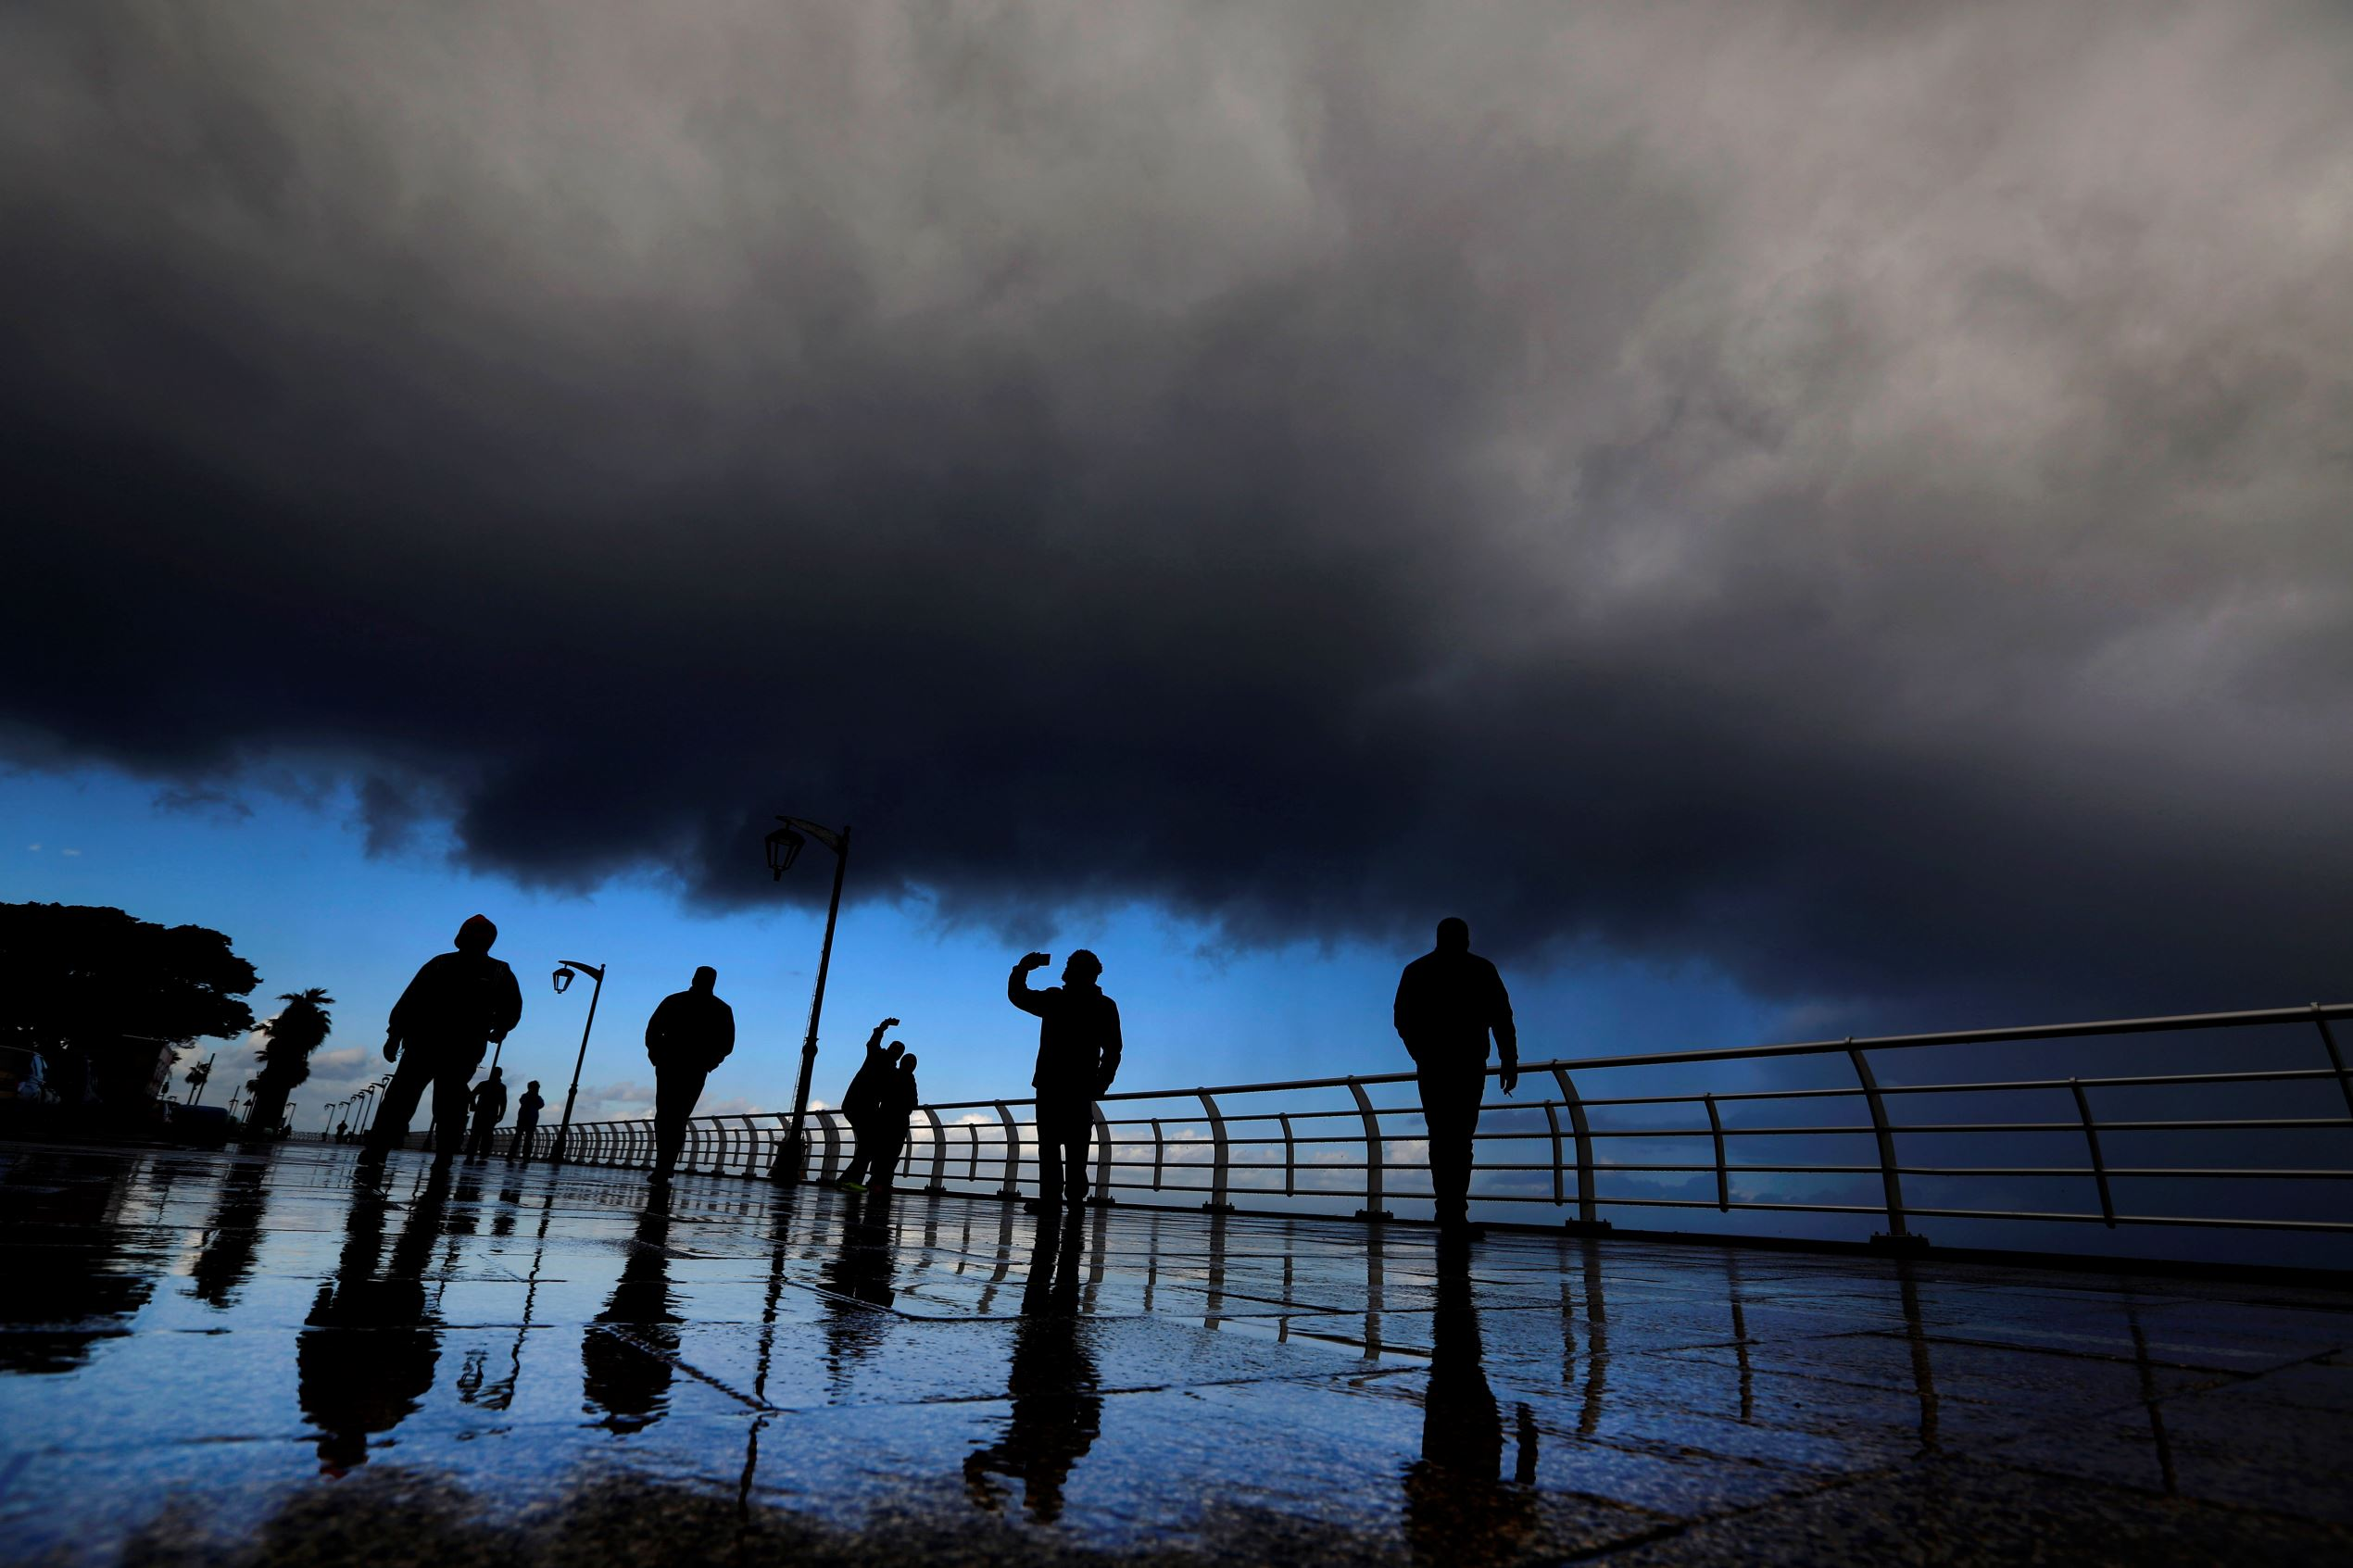 Слайд 12 из 86: Citizens take 'selfies' on the seafront at the Corniche, or waterfront promenade, in Beirut, Lebanon, Tuesday, Jan. 19, 2016. Temperatures in Beirut took a dip reaching 10 degrees Celsius (50 degrees Fahrenheit) at night. (AP Photo/Hassan Ammar)